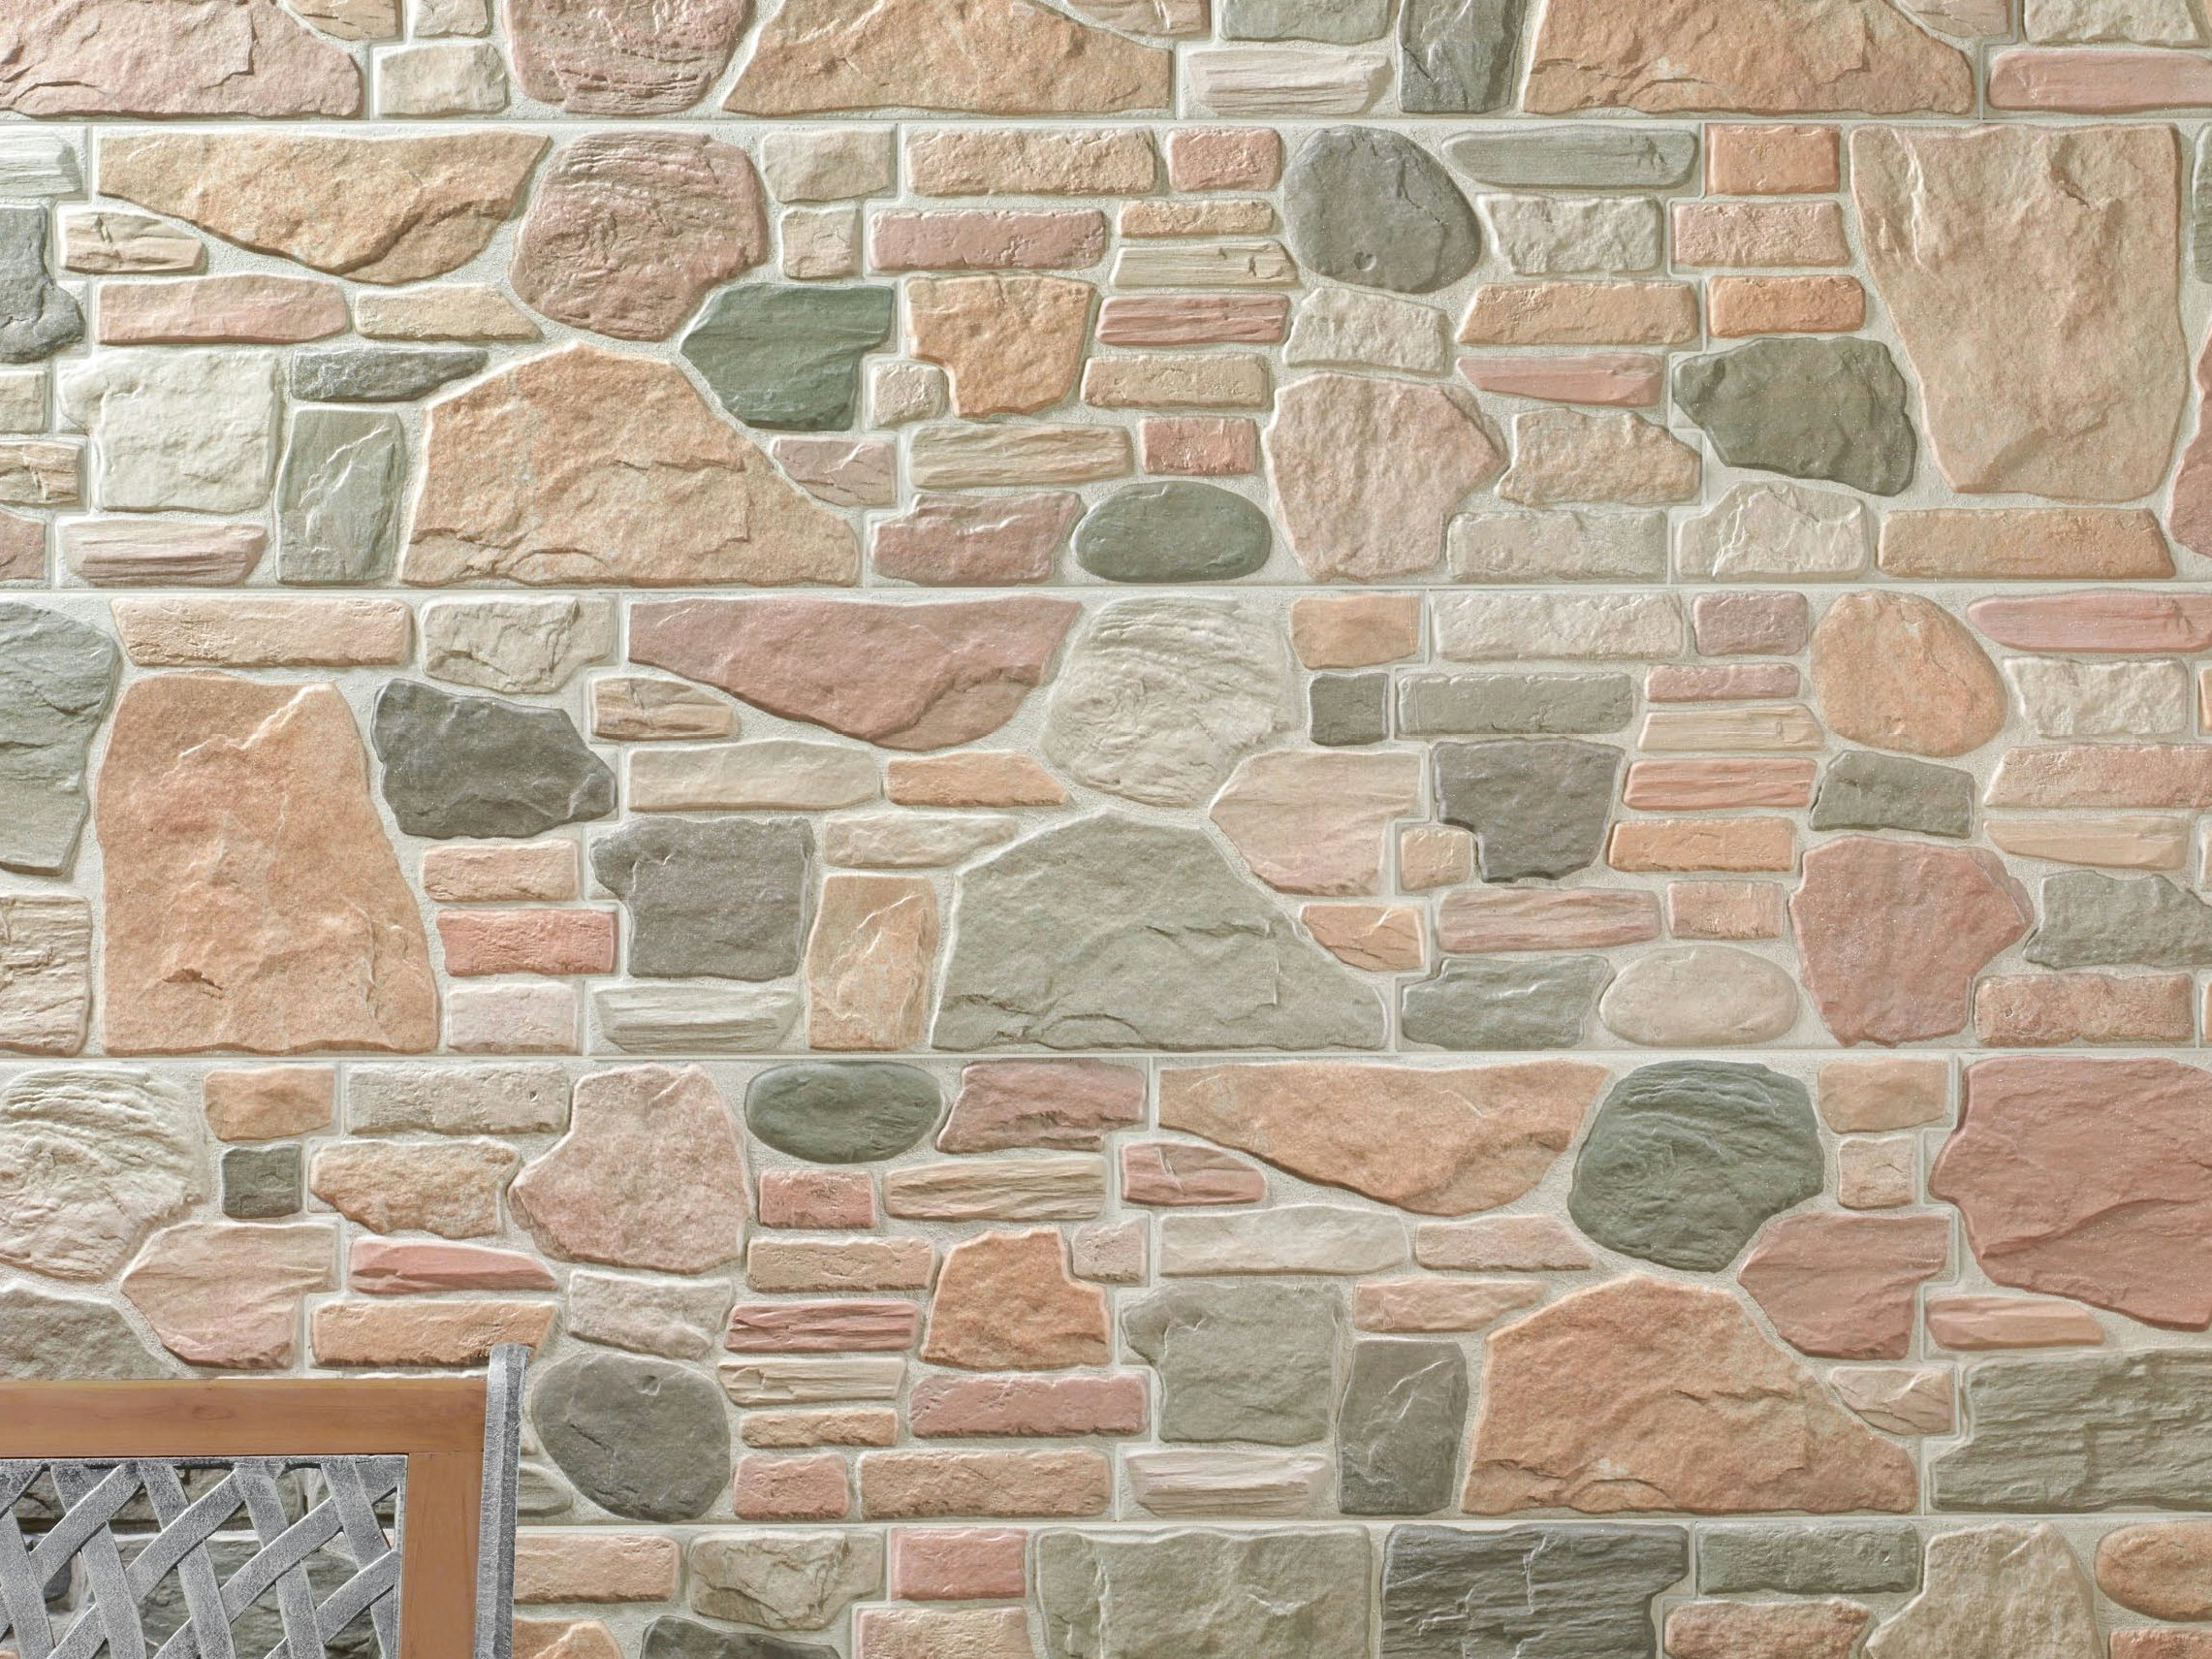 Stone Tiles For Backyard : Outdoor porcelain stoneware wall tiles with stone effect STONE WALL by